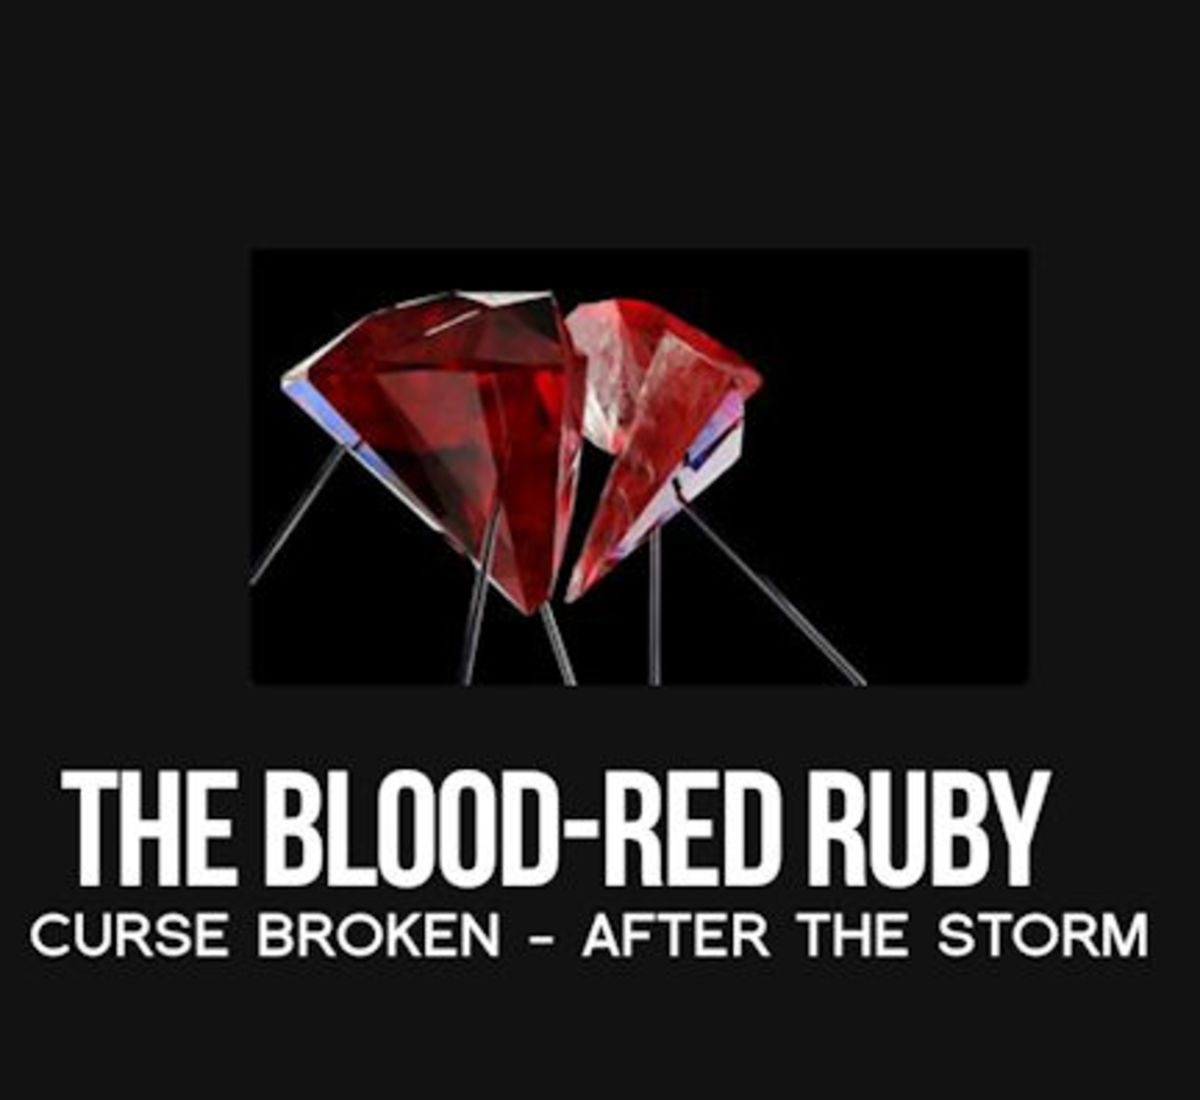 The Blood-Red Ruby: After the Storm 16